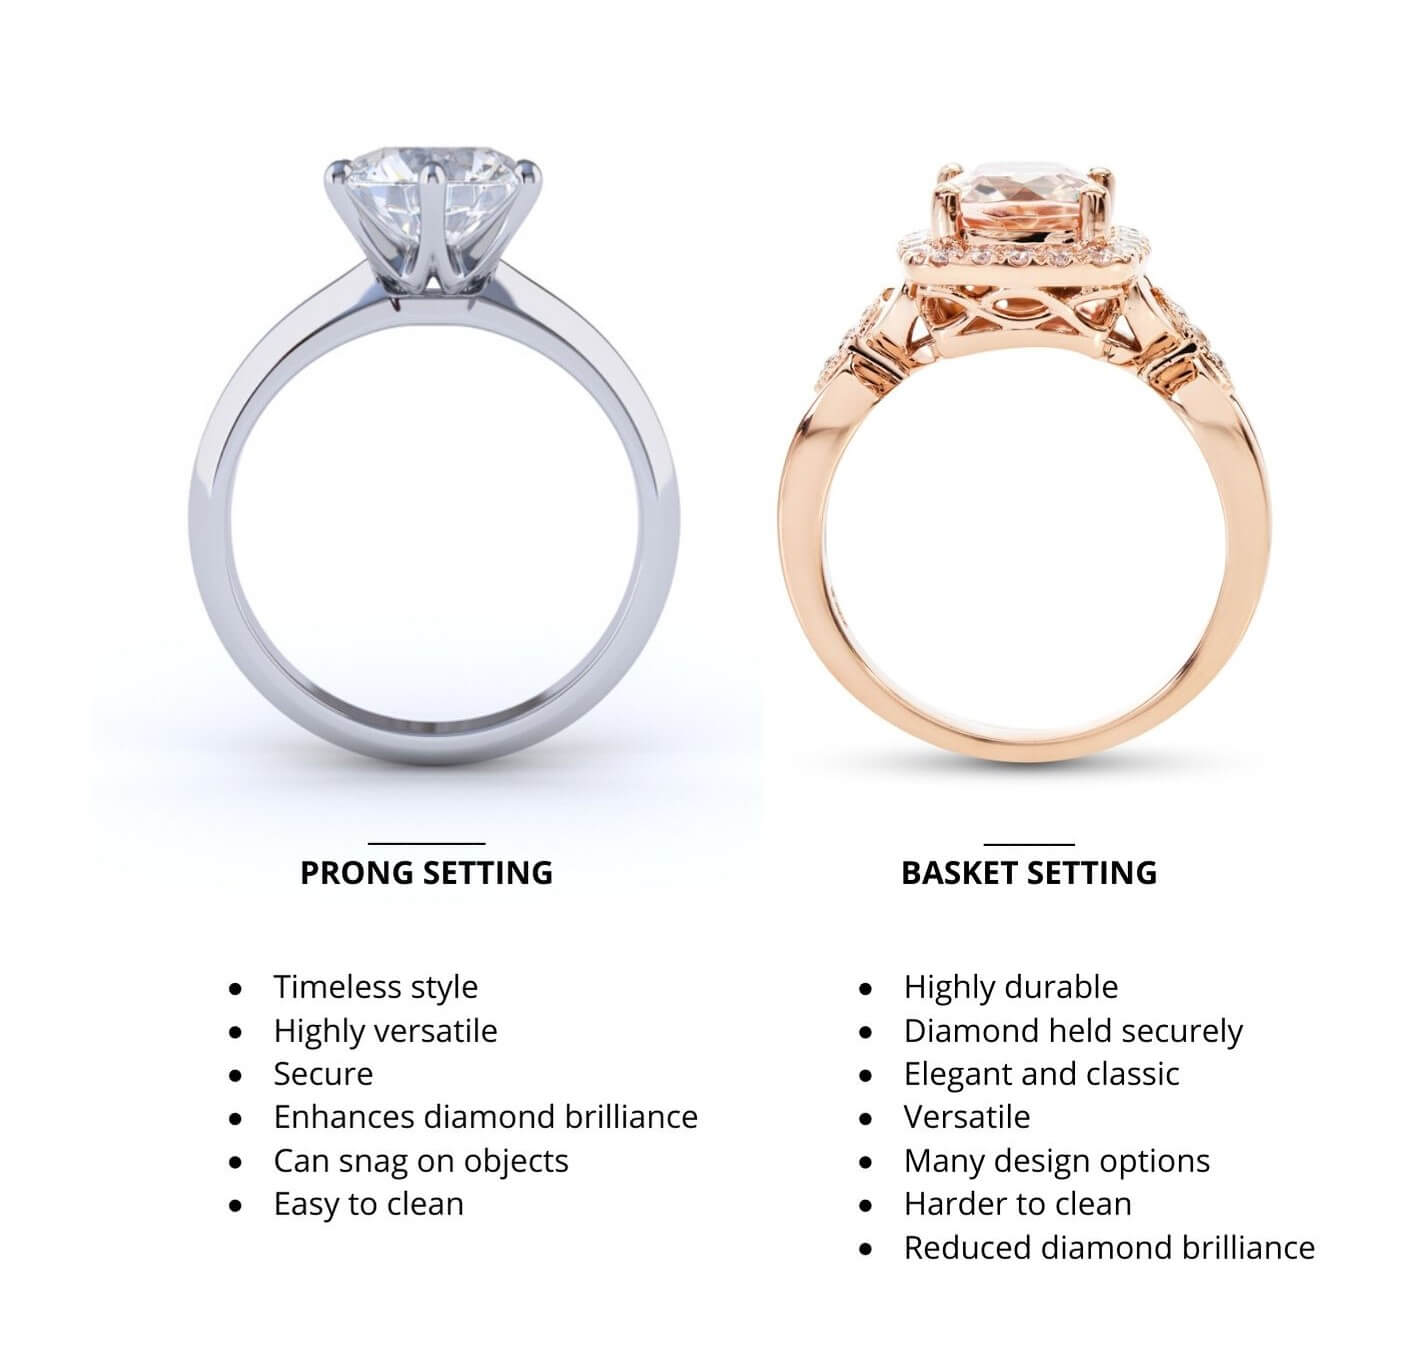 prong vs basket engagement ring side by sied